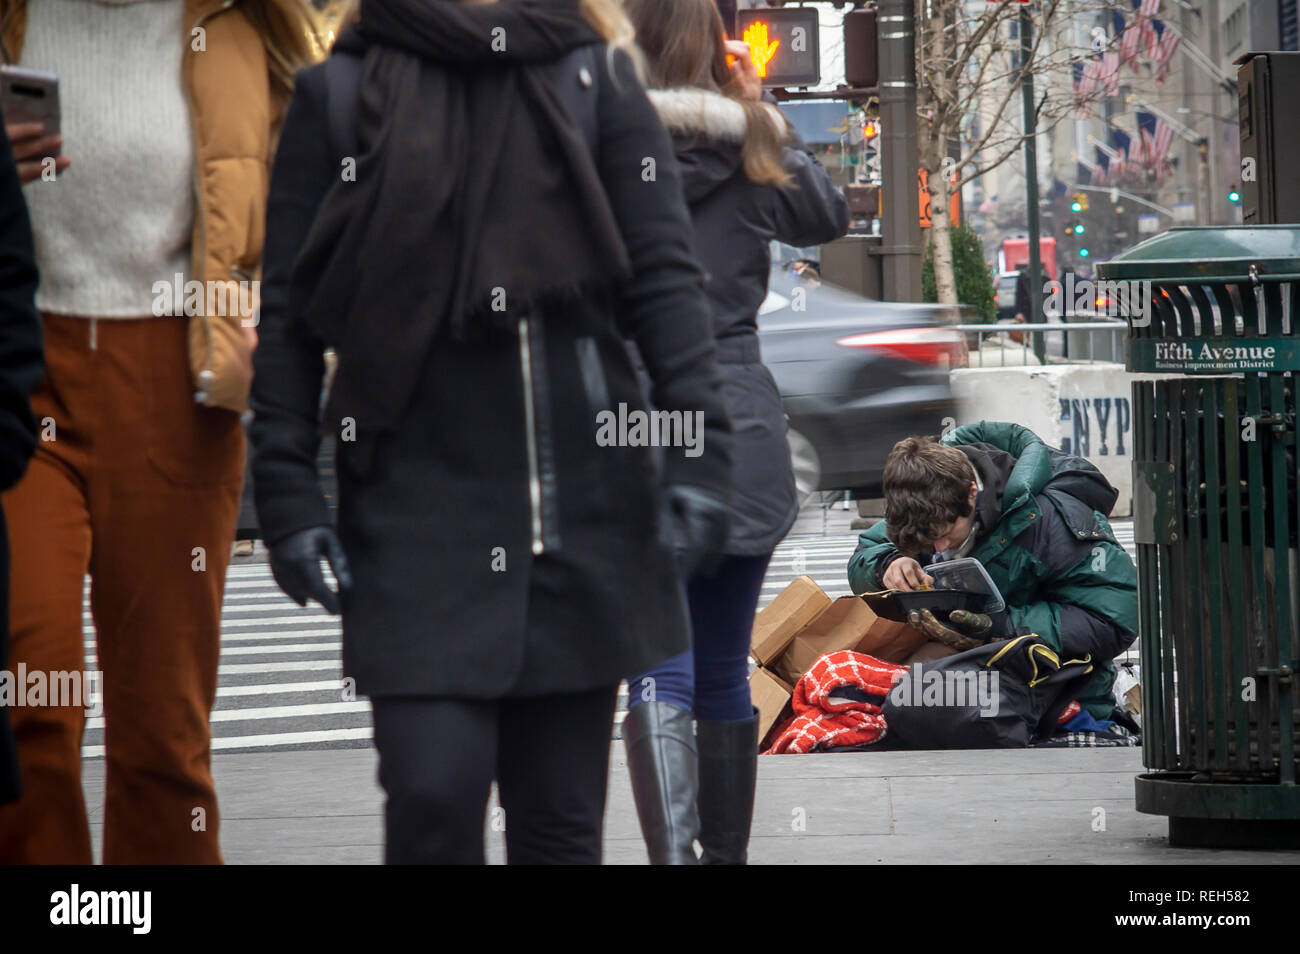 An individual begs in Midtown Manhattan in New York on Saturday, January 19, 2019. (© Richard B. Levine) - Stock Image